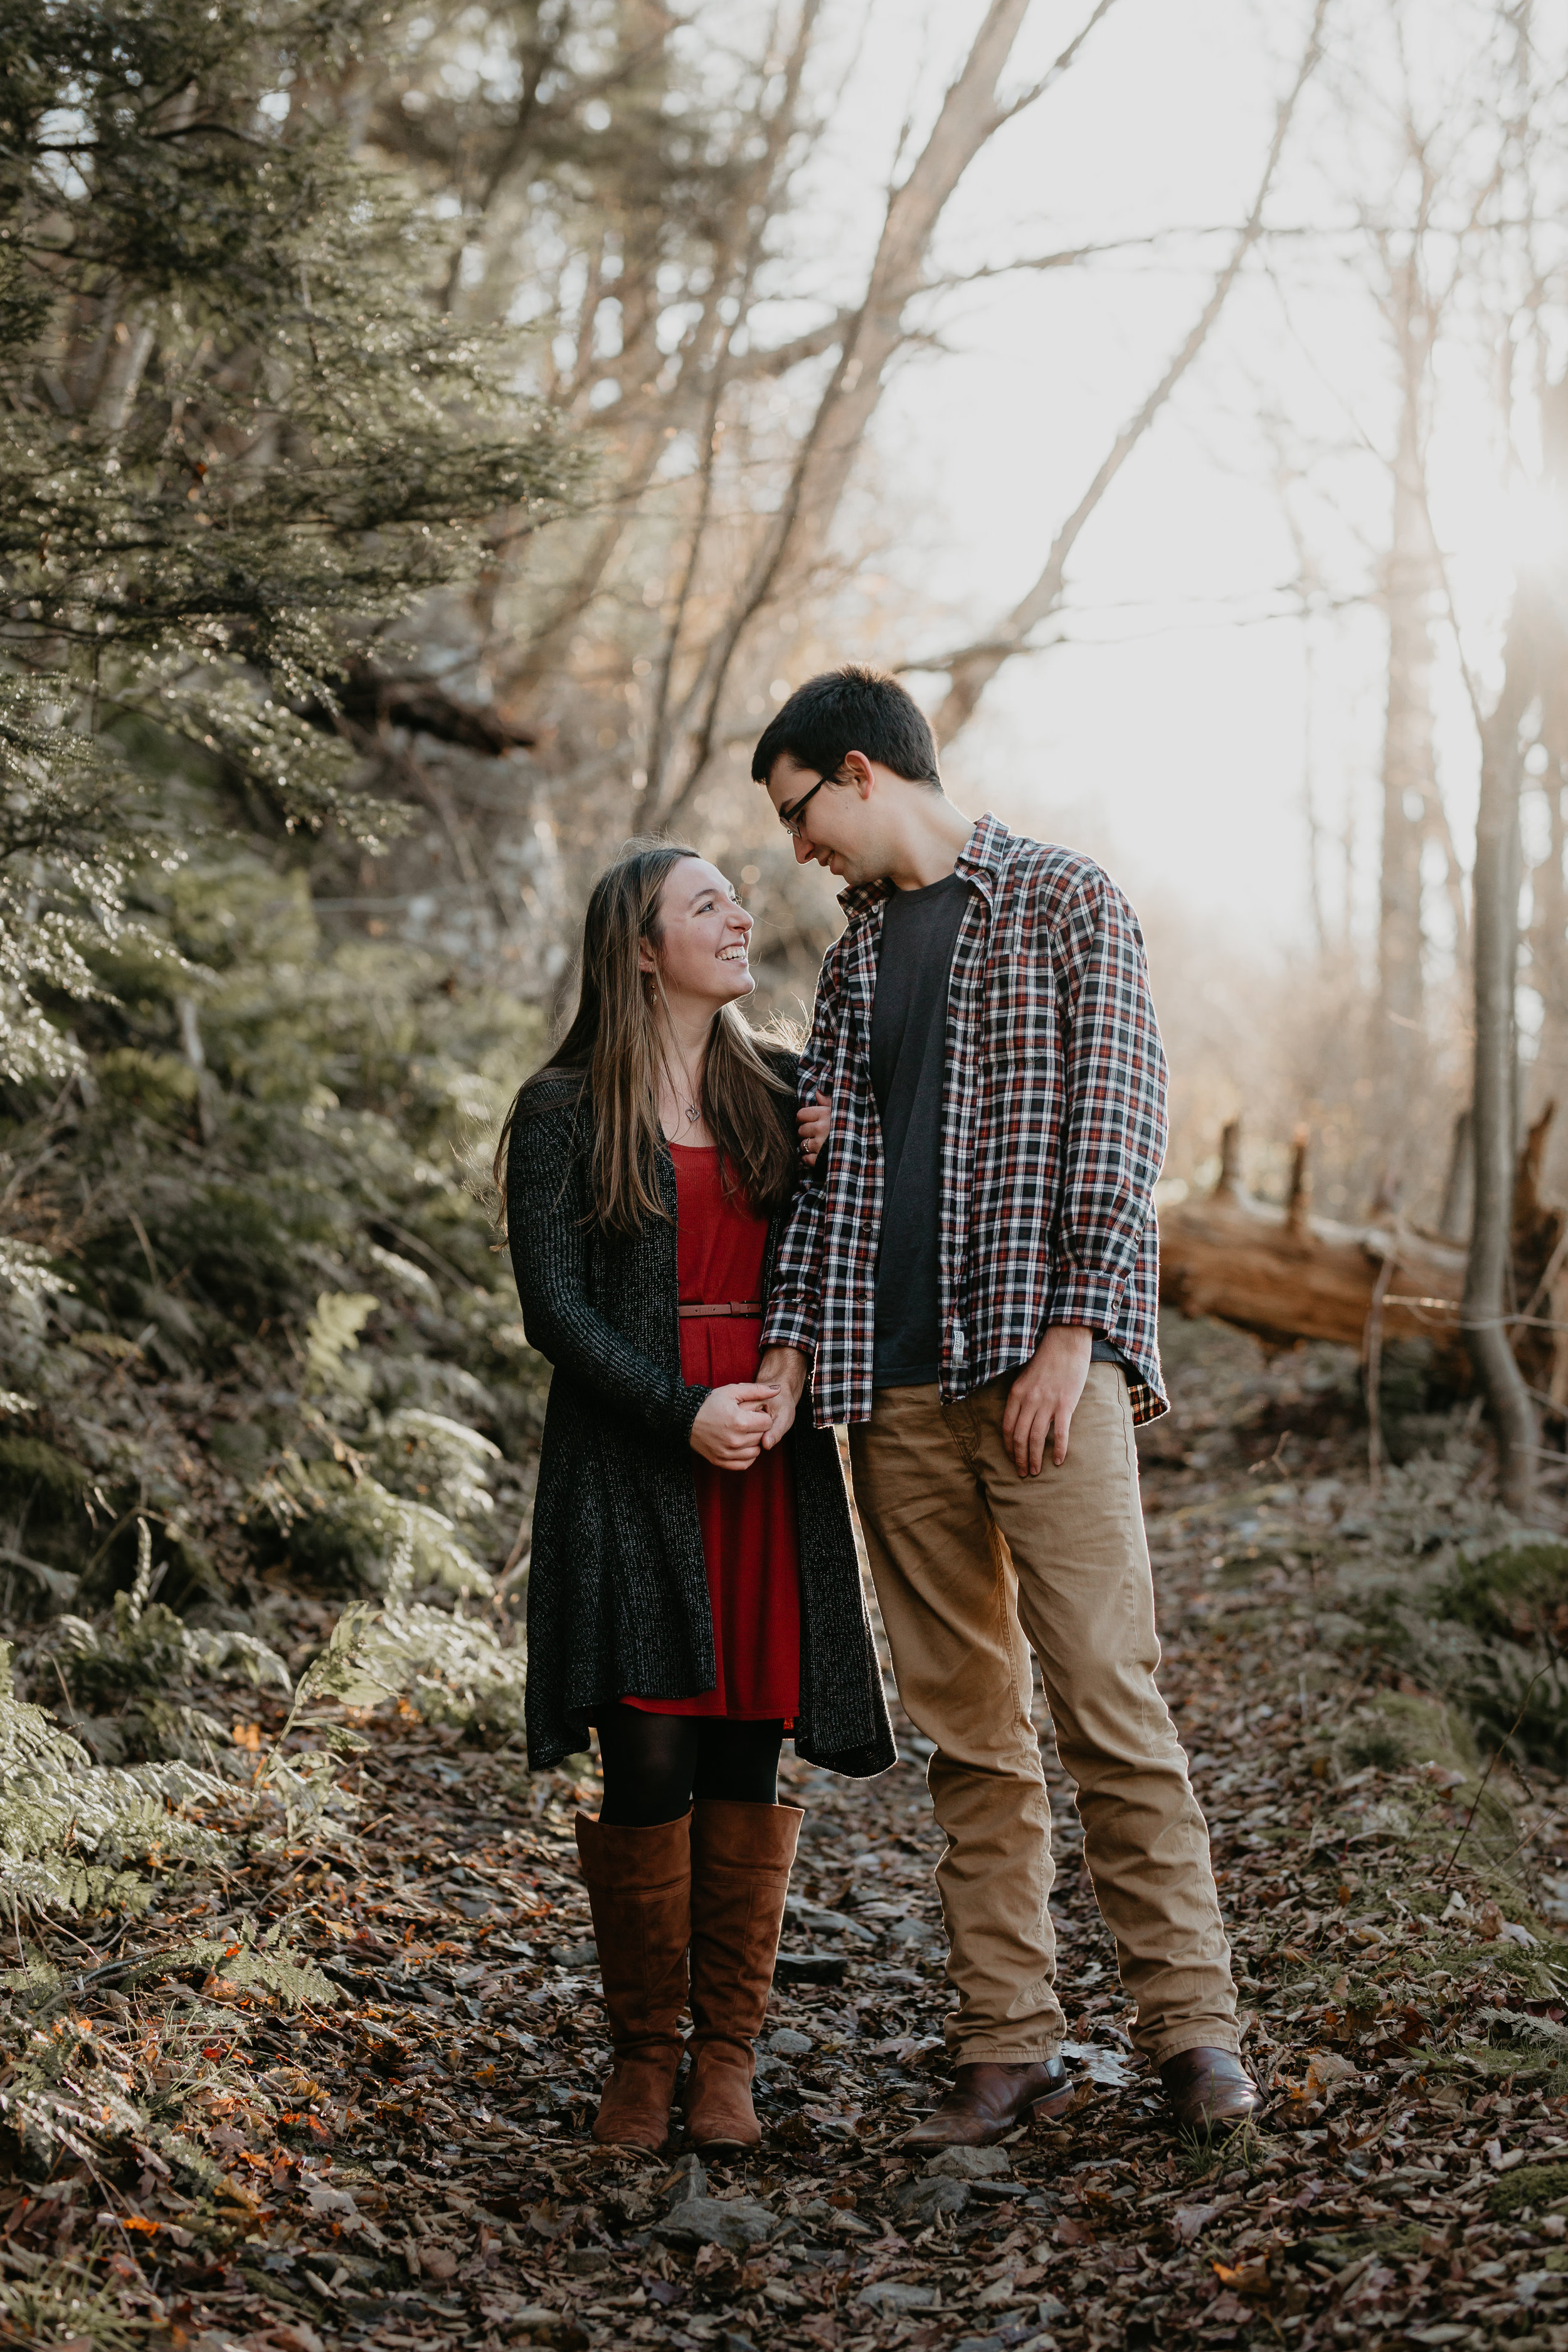 nicole-daacke-photography-shenandoah-national-park-adventure-engagement-session-with-fall-foliage-shenandoah-elopement-photographer-engagement-photos-in-virginia-charlottesville-national-park-adventure-elopement-photographer-3808.jpg